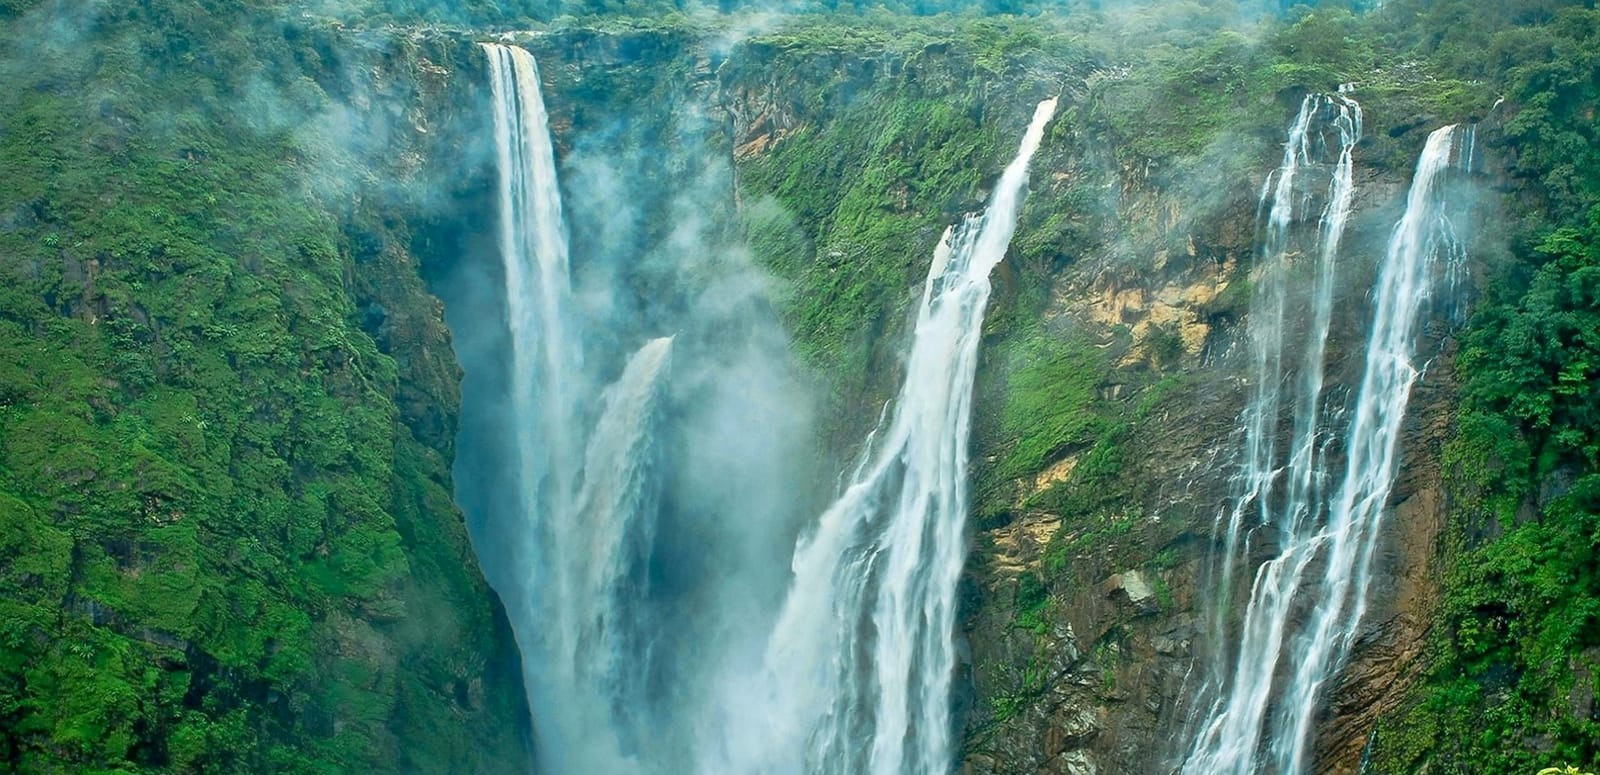 1464189819_jog-falls-wallpaper.jpg